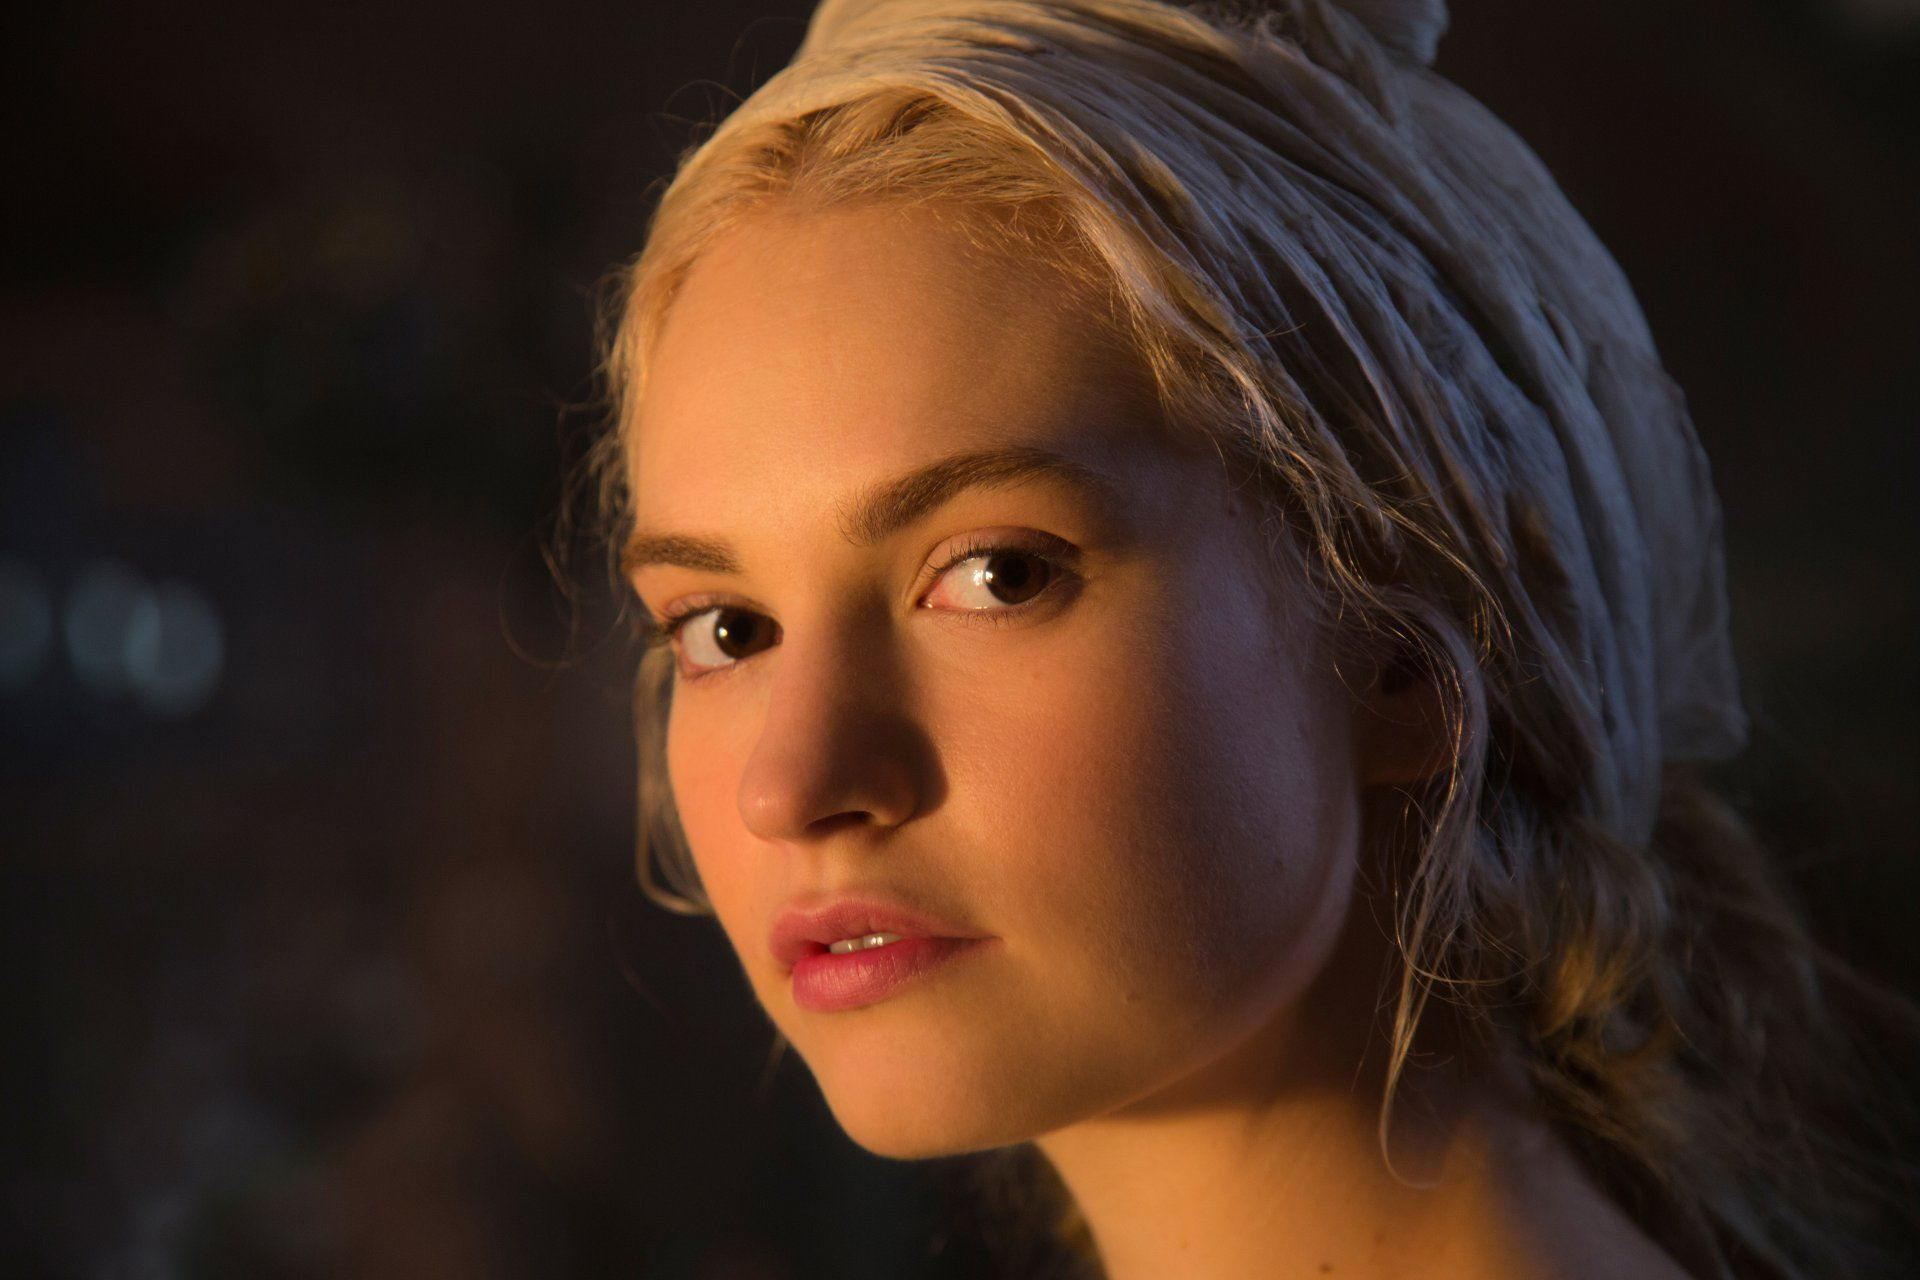 Cinderella Cinderella Lily James Hd Wallpaper For Computer Or Android Device Cinderella Movie Cinderella 2015 New Cinderella